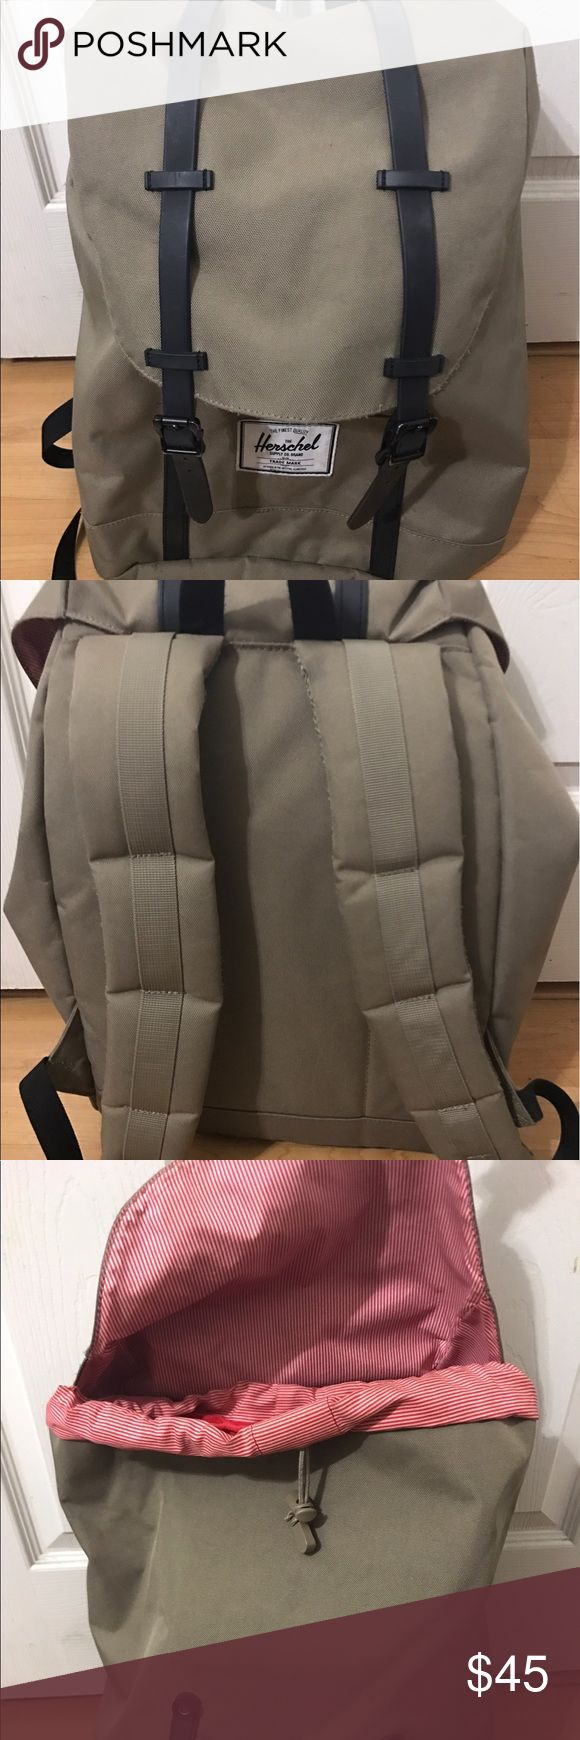 """Herschel Supply Co. Retreat Backpack in Lead/Black NO trades BUNDLES: 10% off for 3+, 15% off for 5+ (just let me know so I can create a different bundle for the 5+ items since Poshmark only allows for one option)  40 🅿️ 15"""" laptop sleeve, used for 10 months Herschel Supply Company Bags Backpacks"""